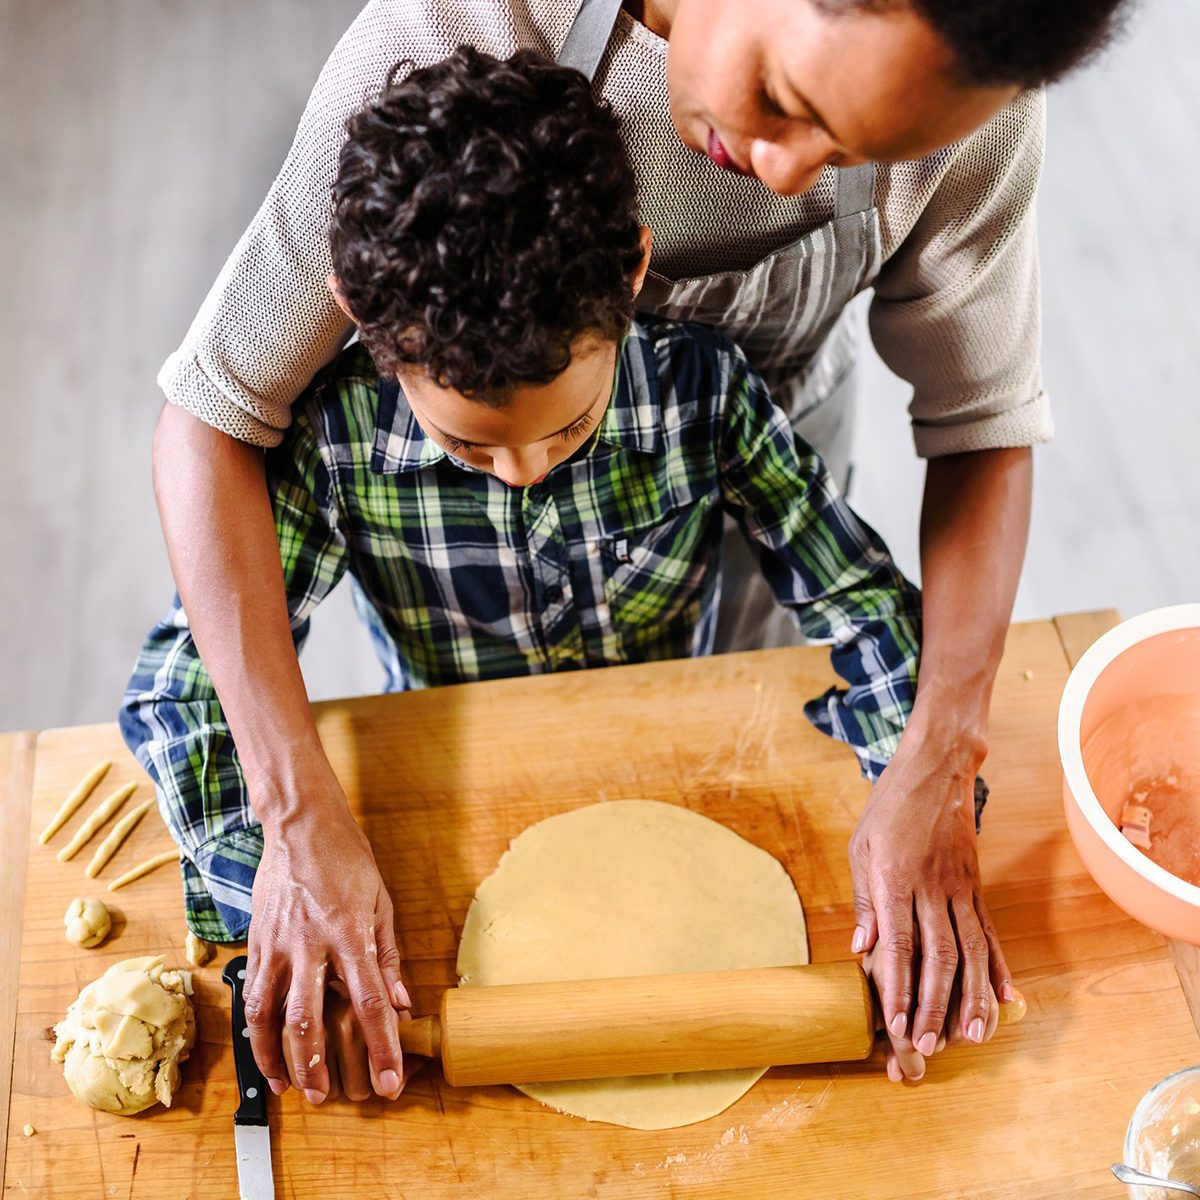 Mother and child rolling out dough together